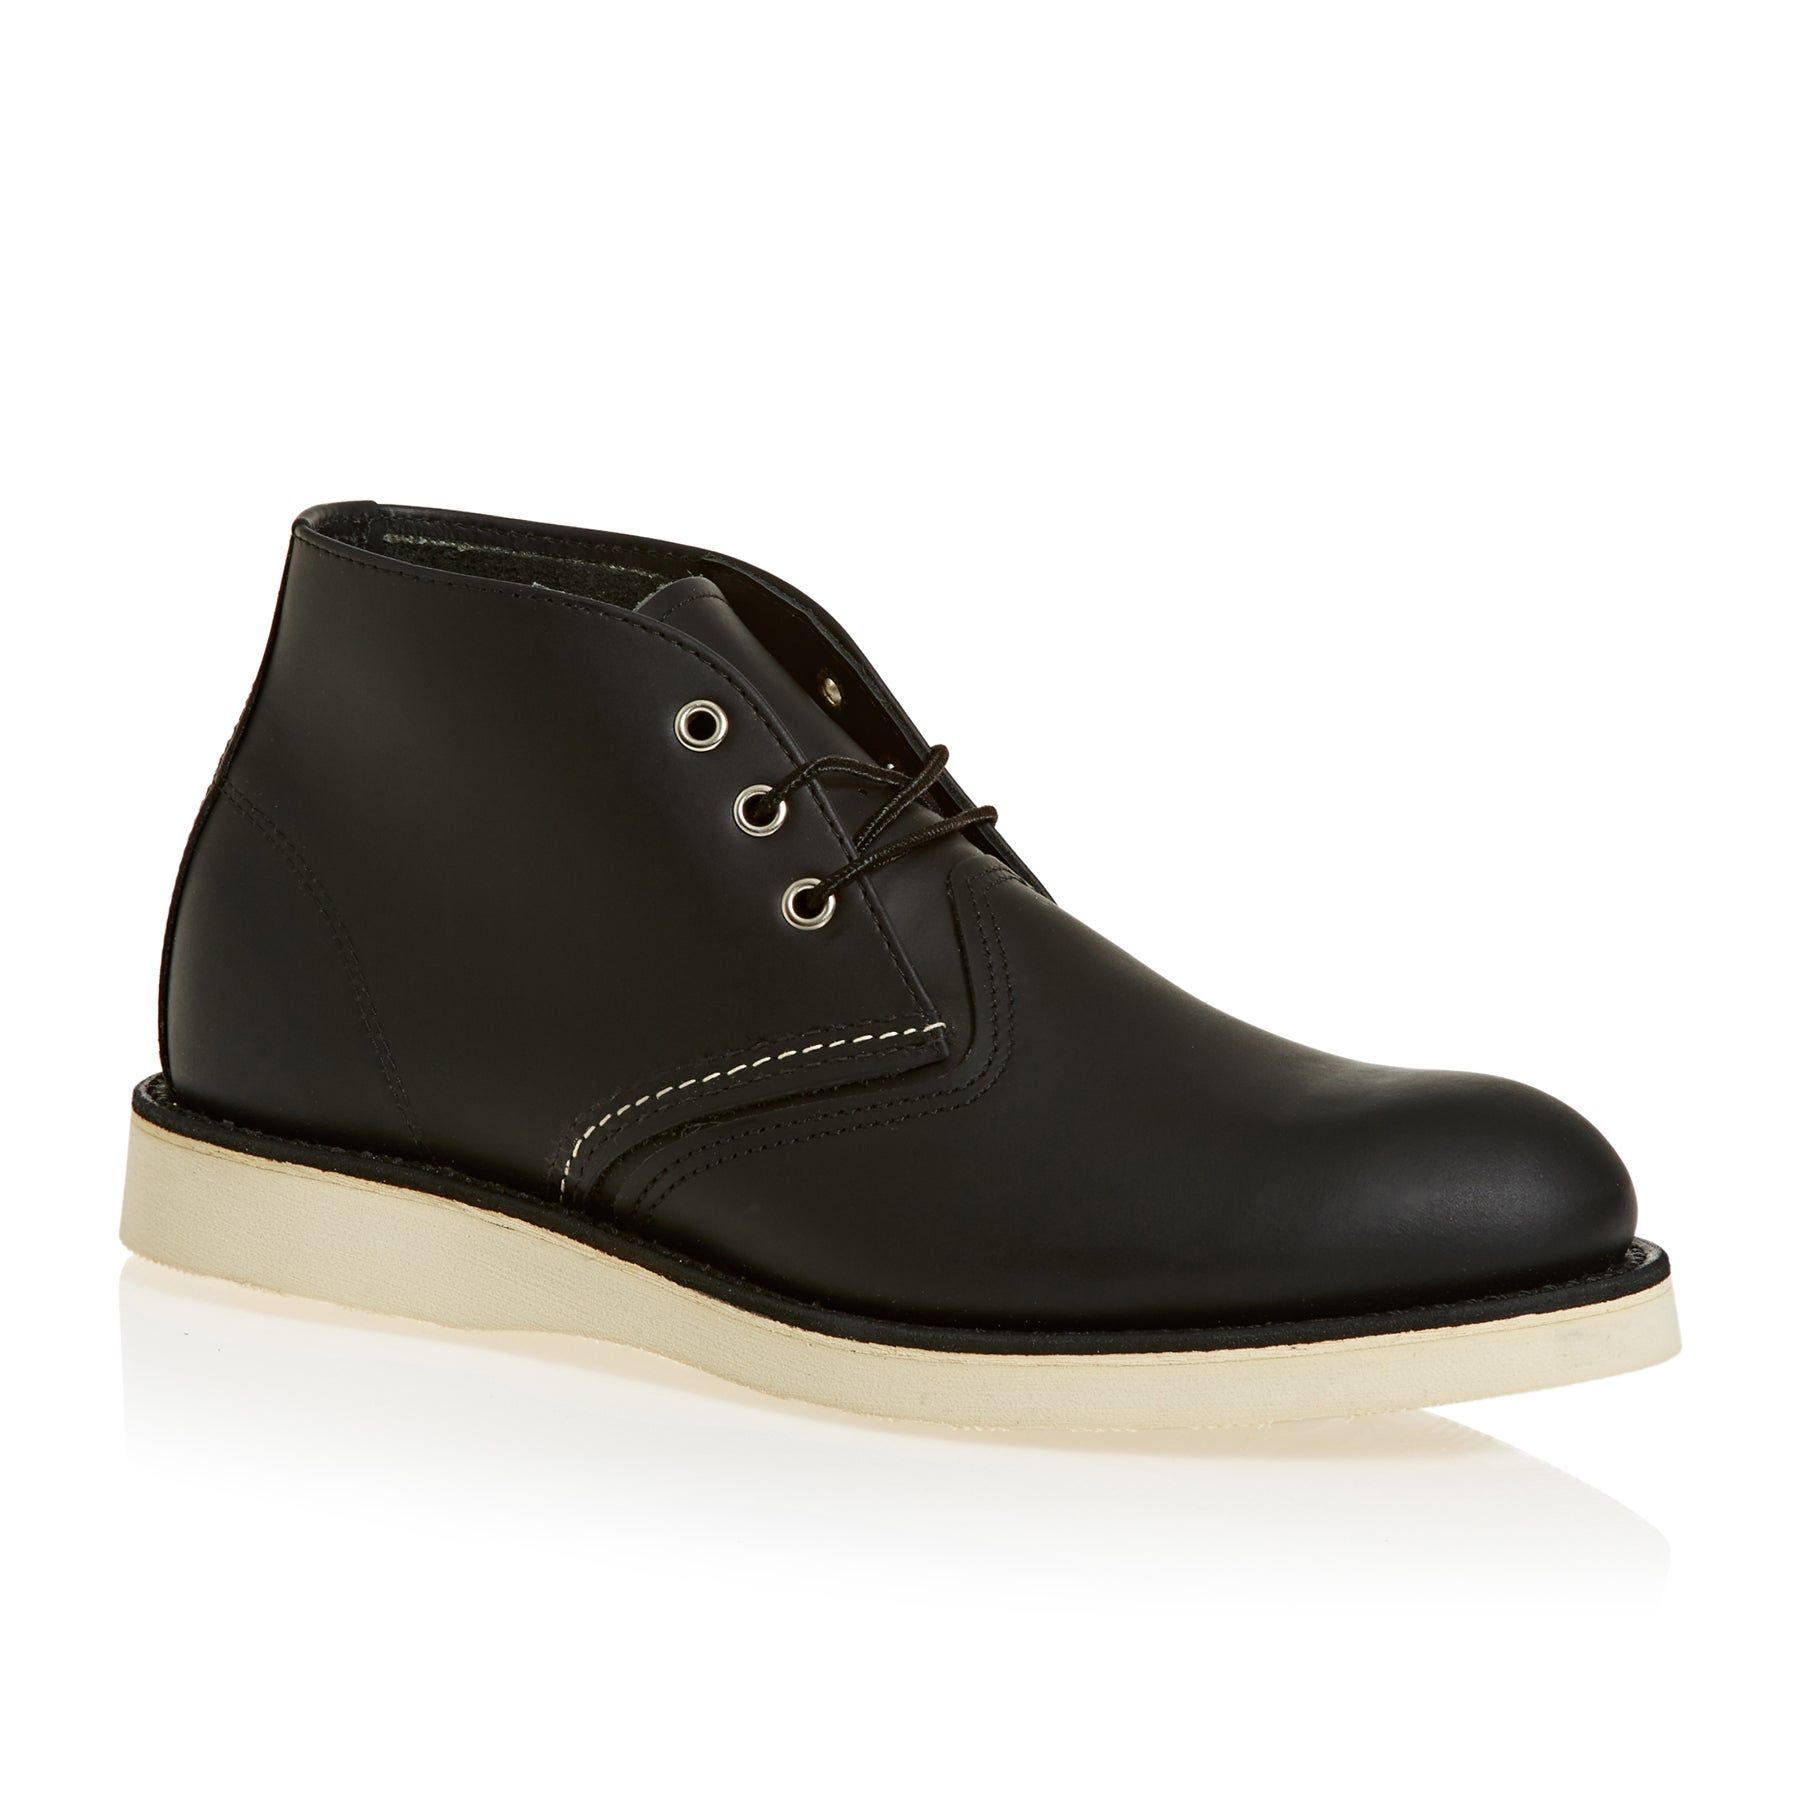 Red Wing 3148 Work Chukka Boots - Black Chrome